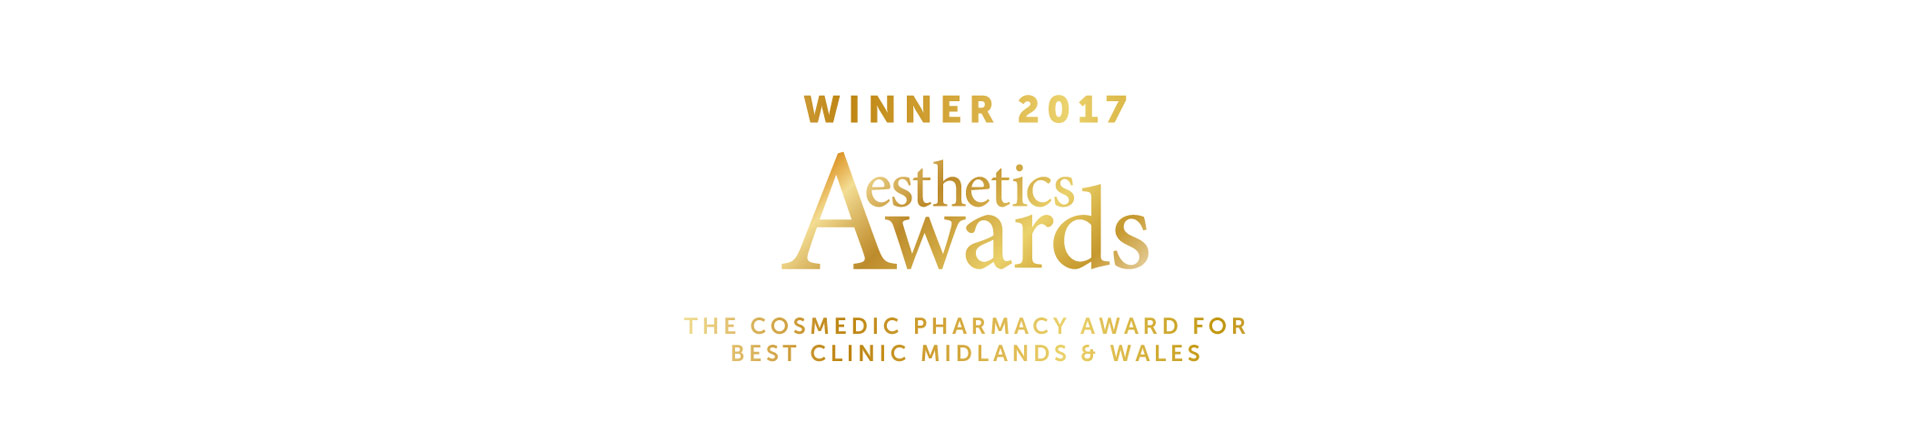 Cellite-Clinic-Aesthetics-Awards-Winner3-2017